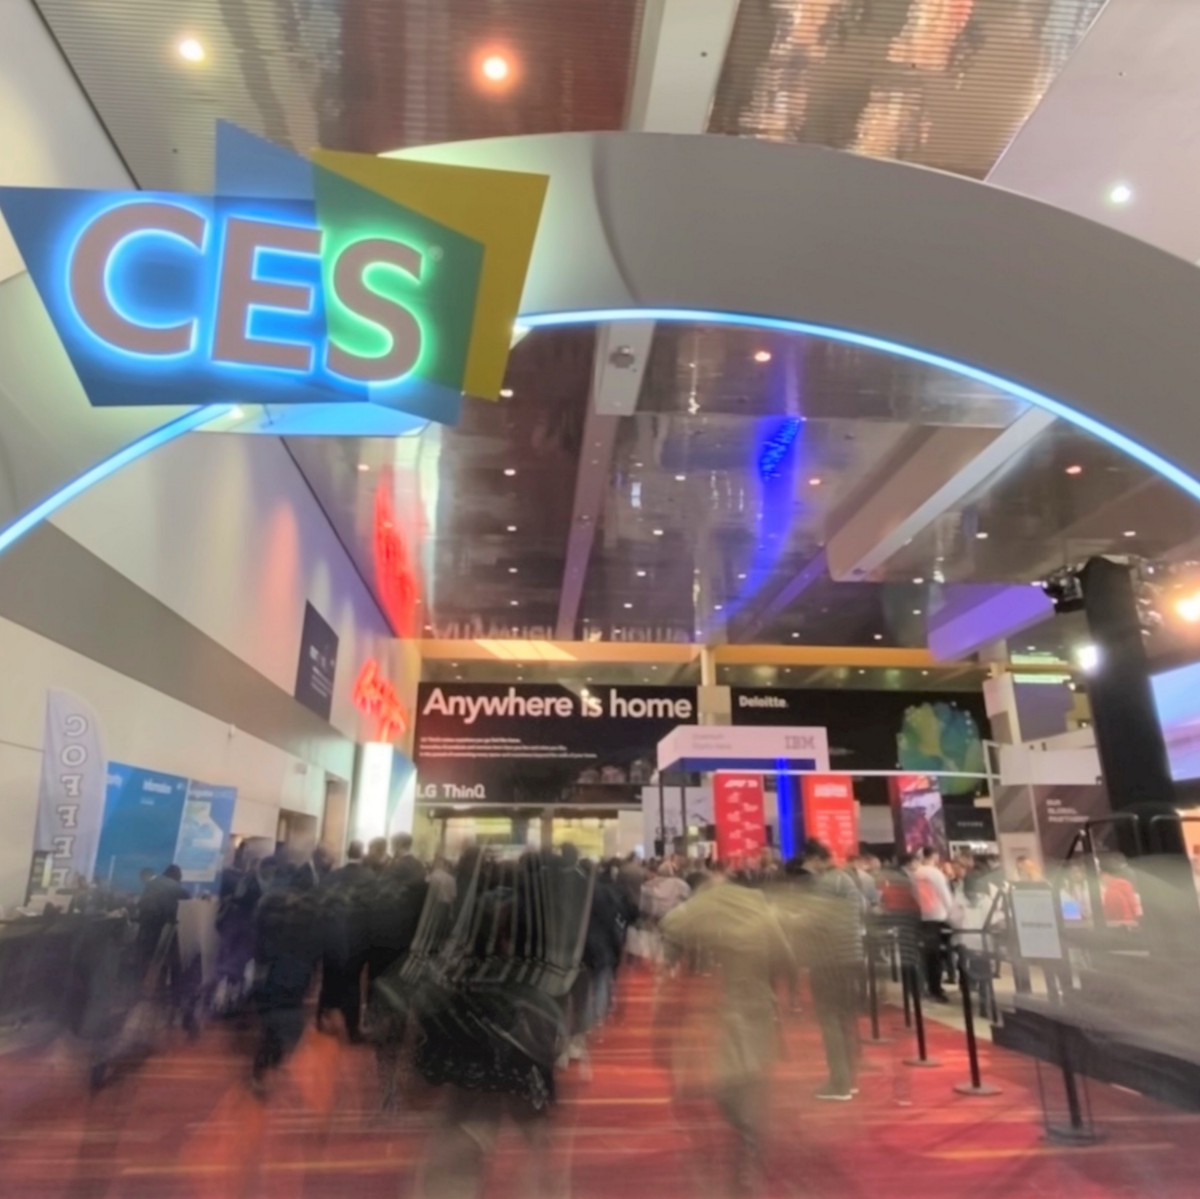 #CES2020: Primordial Soup of Innovation